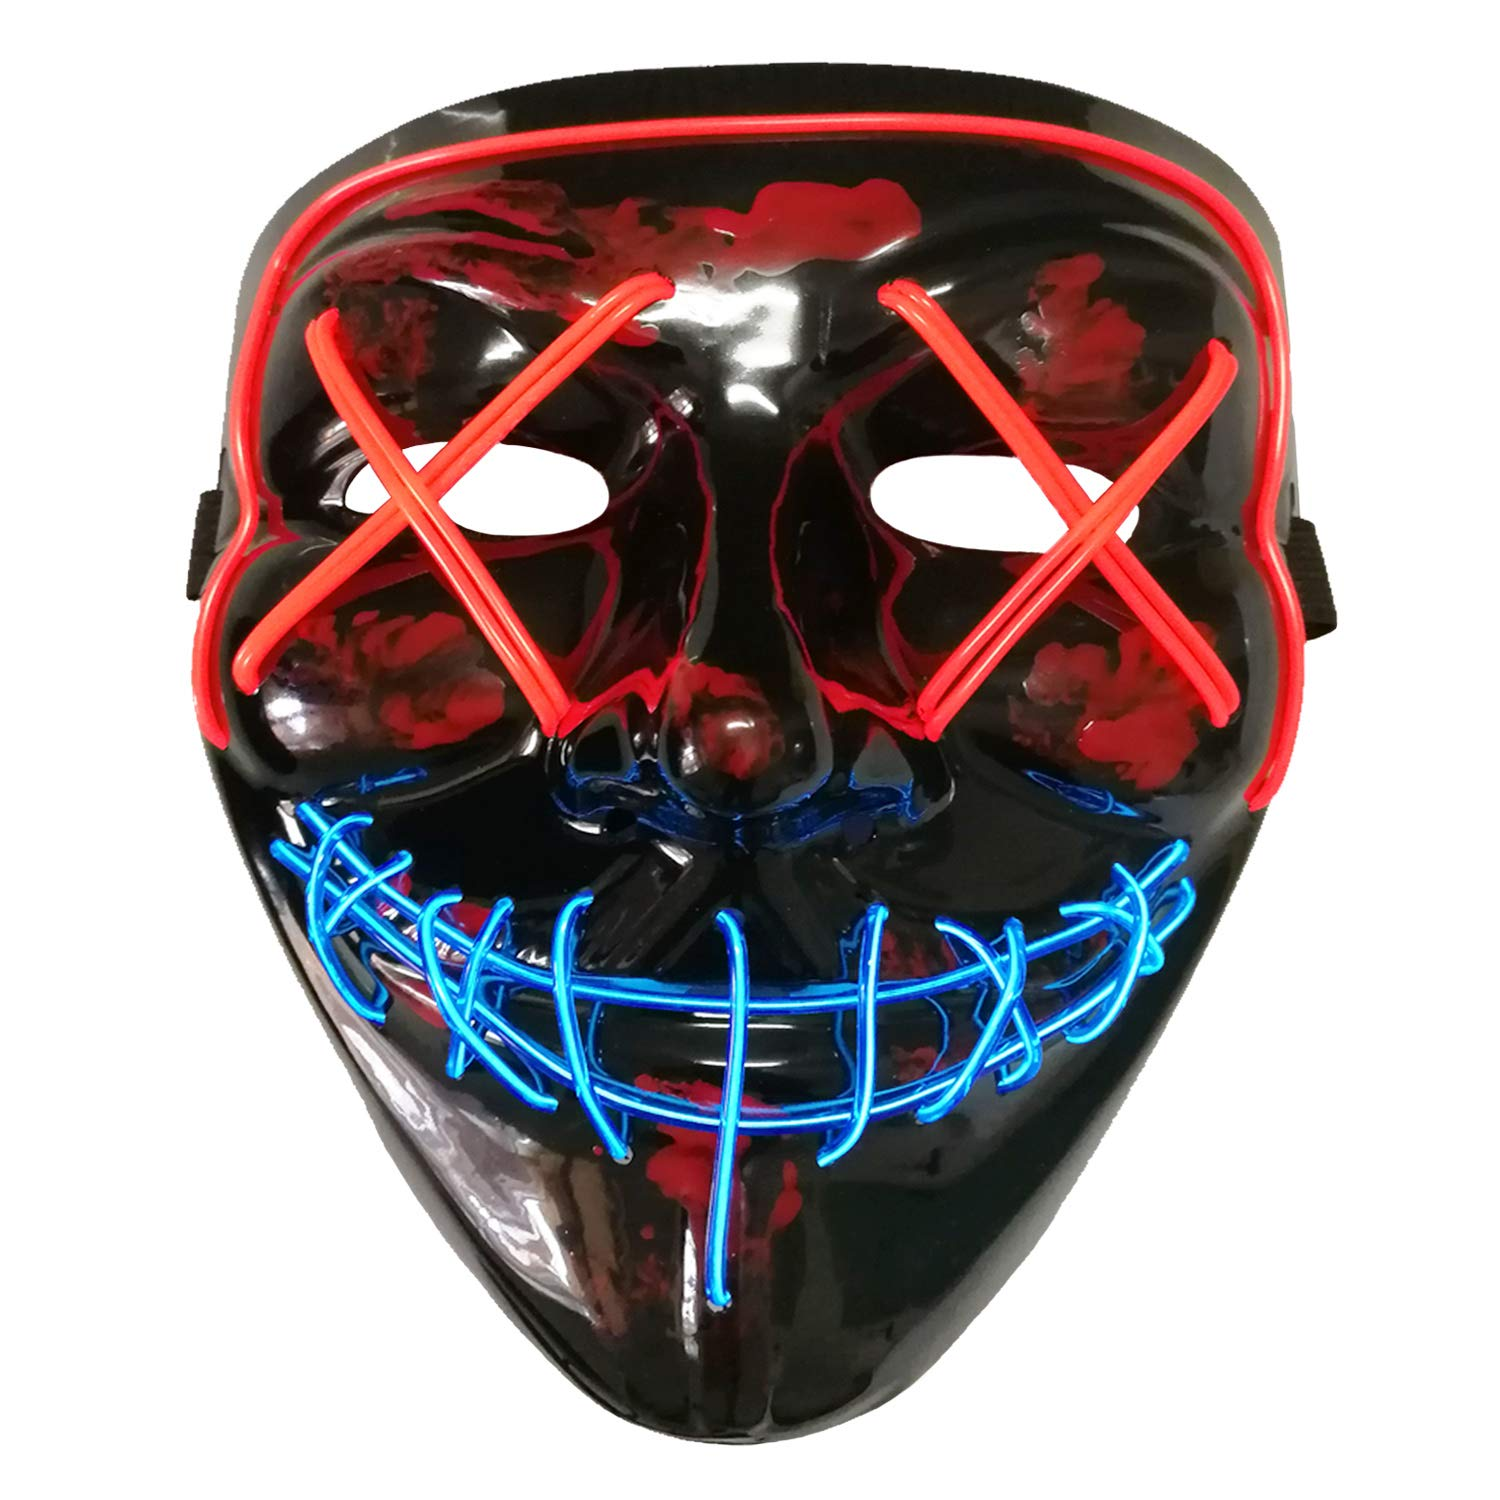 AUHOO Light up Purge Mask LED Halloween Mask Scary Mask Rave Party Costume(Red & Blue) by AUHOO